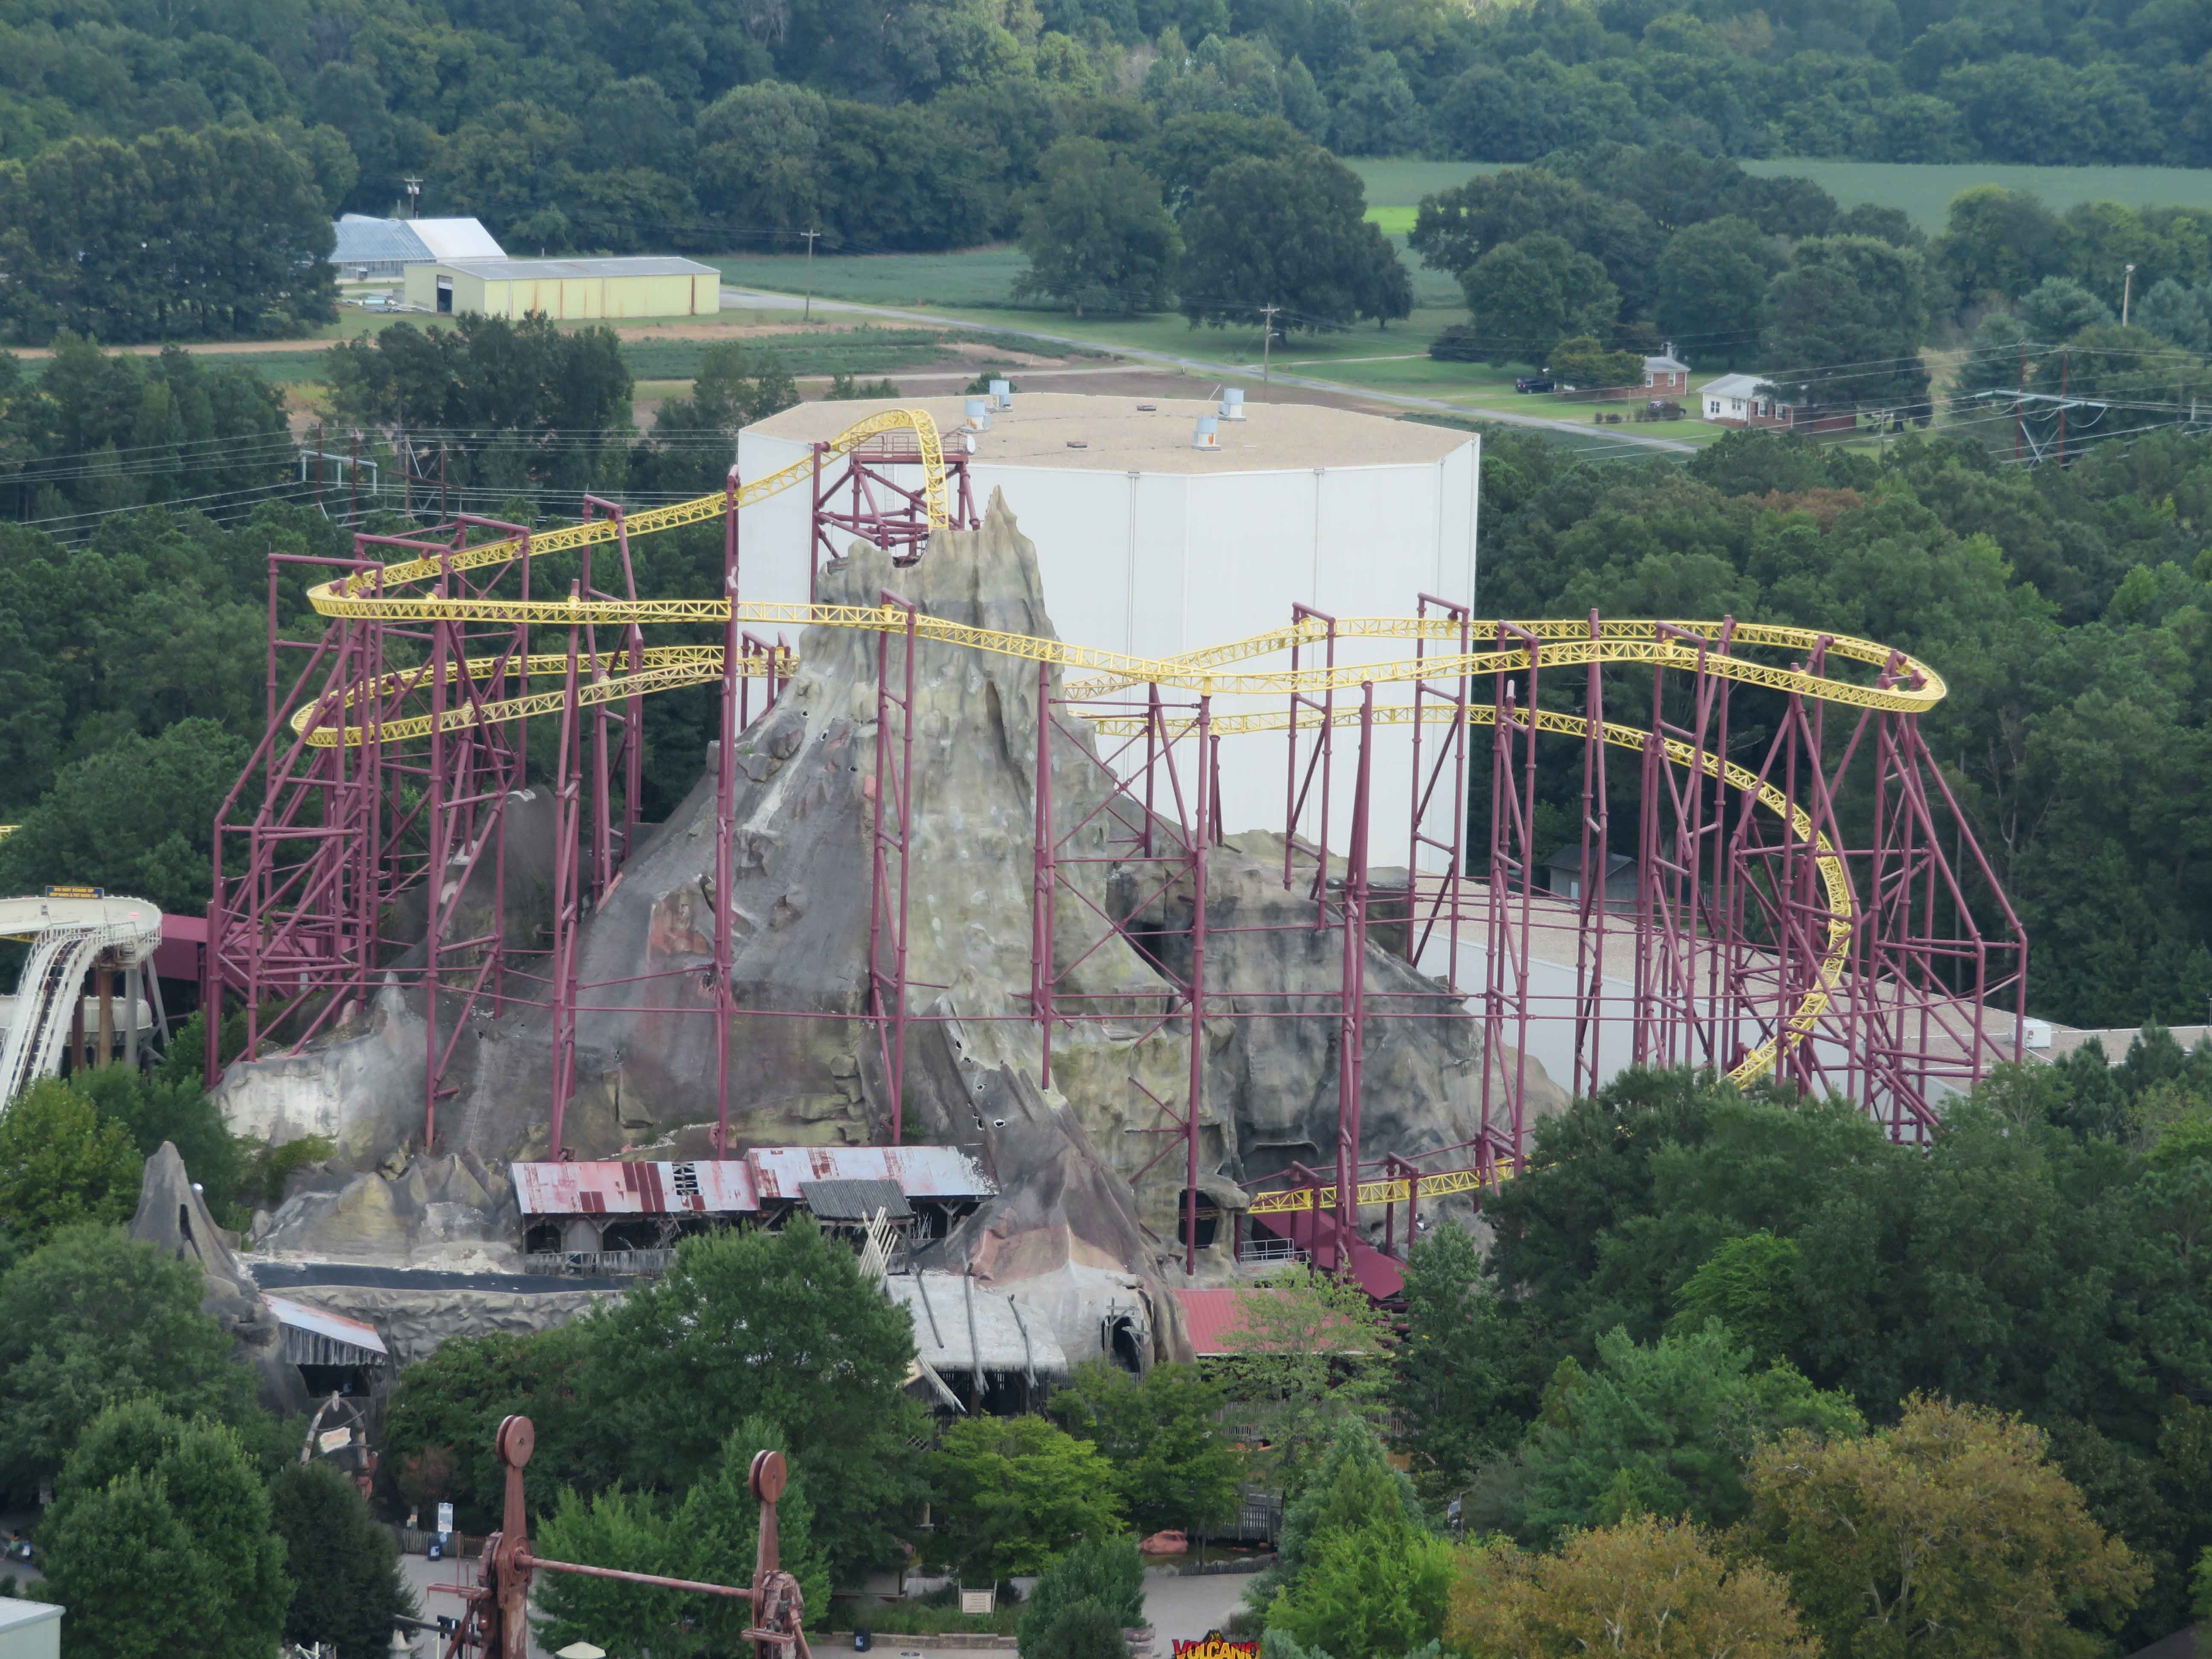 Kings Dominion Announces Removal of Volcano: The Blast